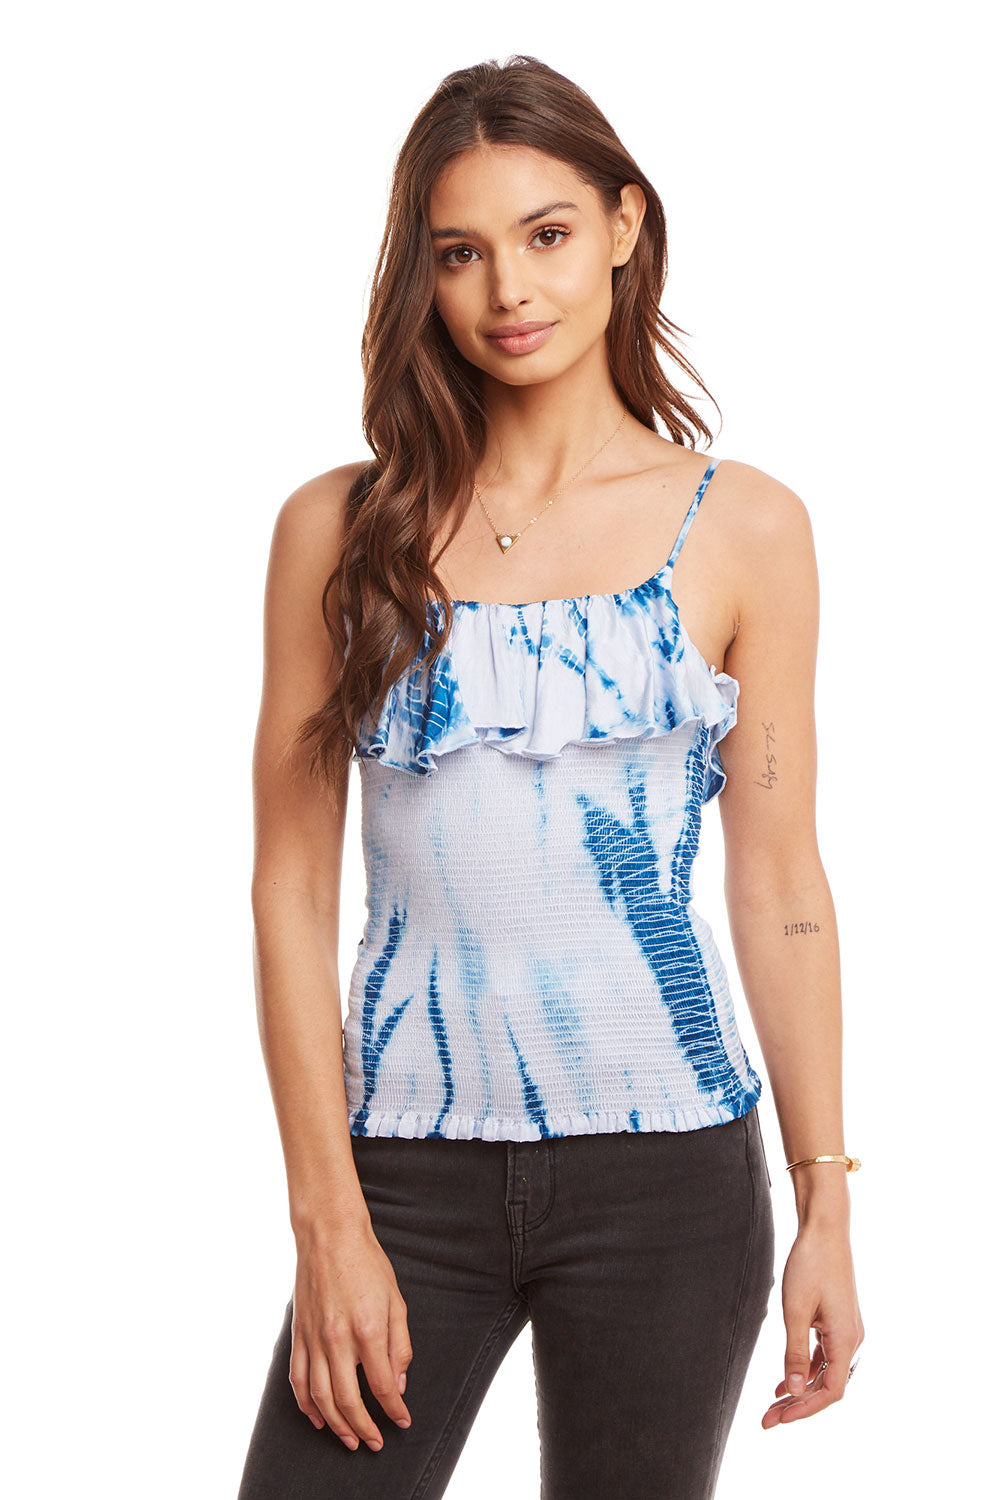 Silky Basics Smocked Ruffle Cropped Cami, WOMENS, chaserbrand.com,chaser clothing,chaser apparel,chaser los angeles